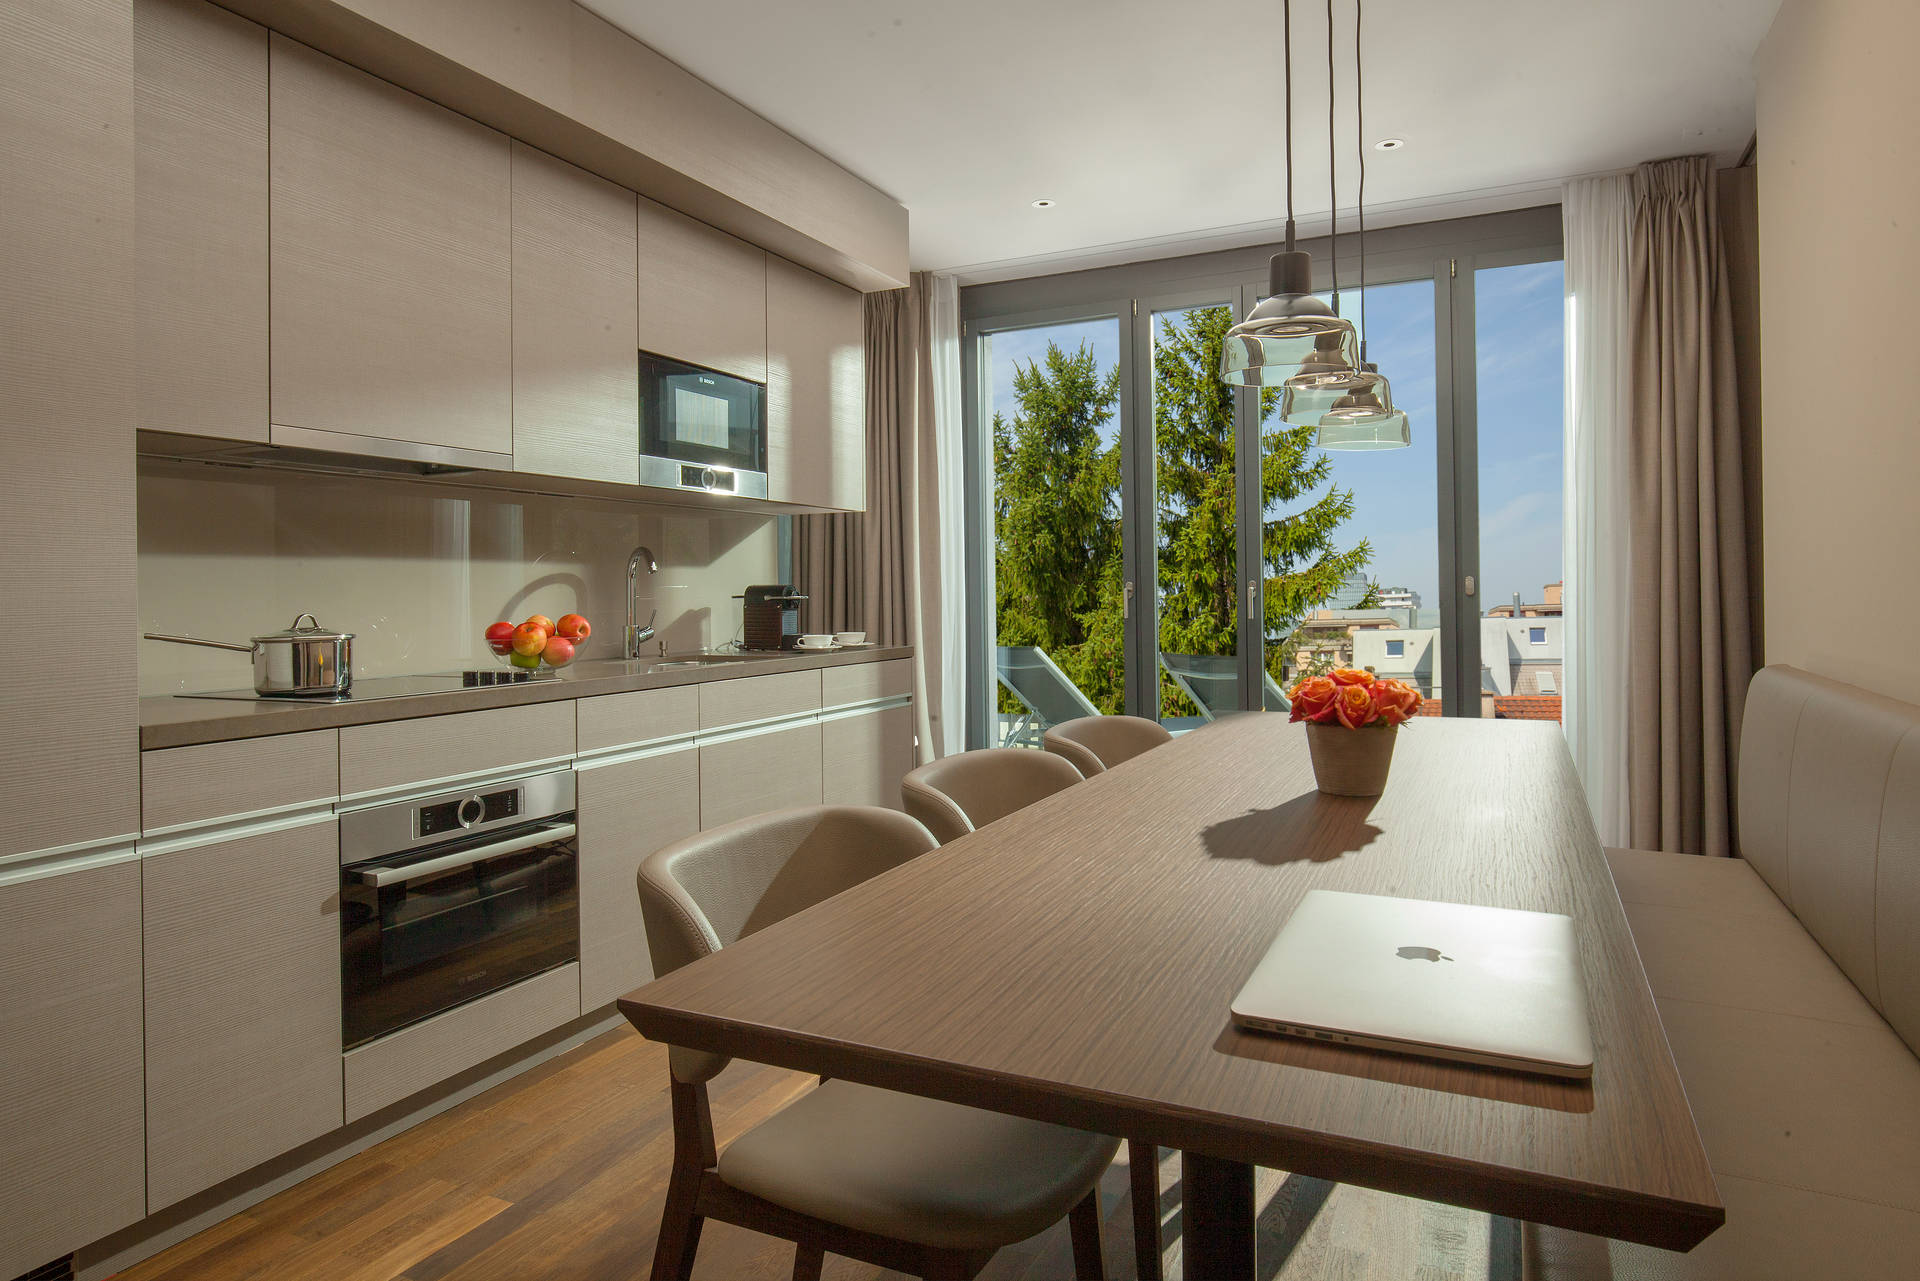 Kitchen with access to roof terrace in the Rooftop Suite in ACASA Suites Zurich